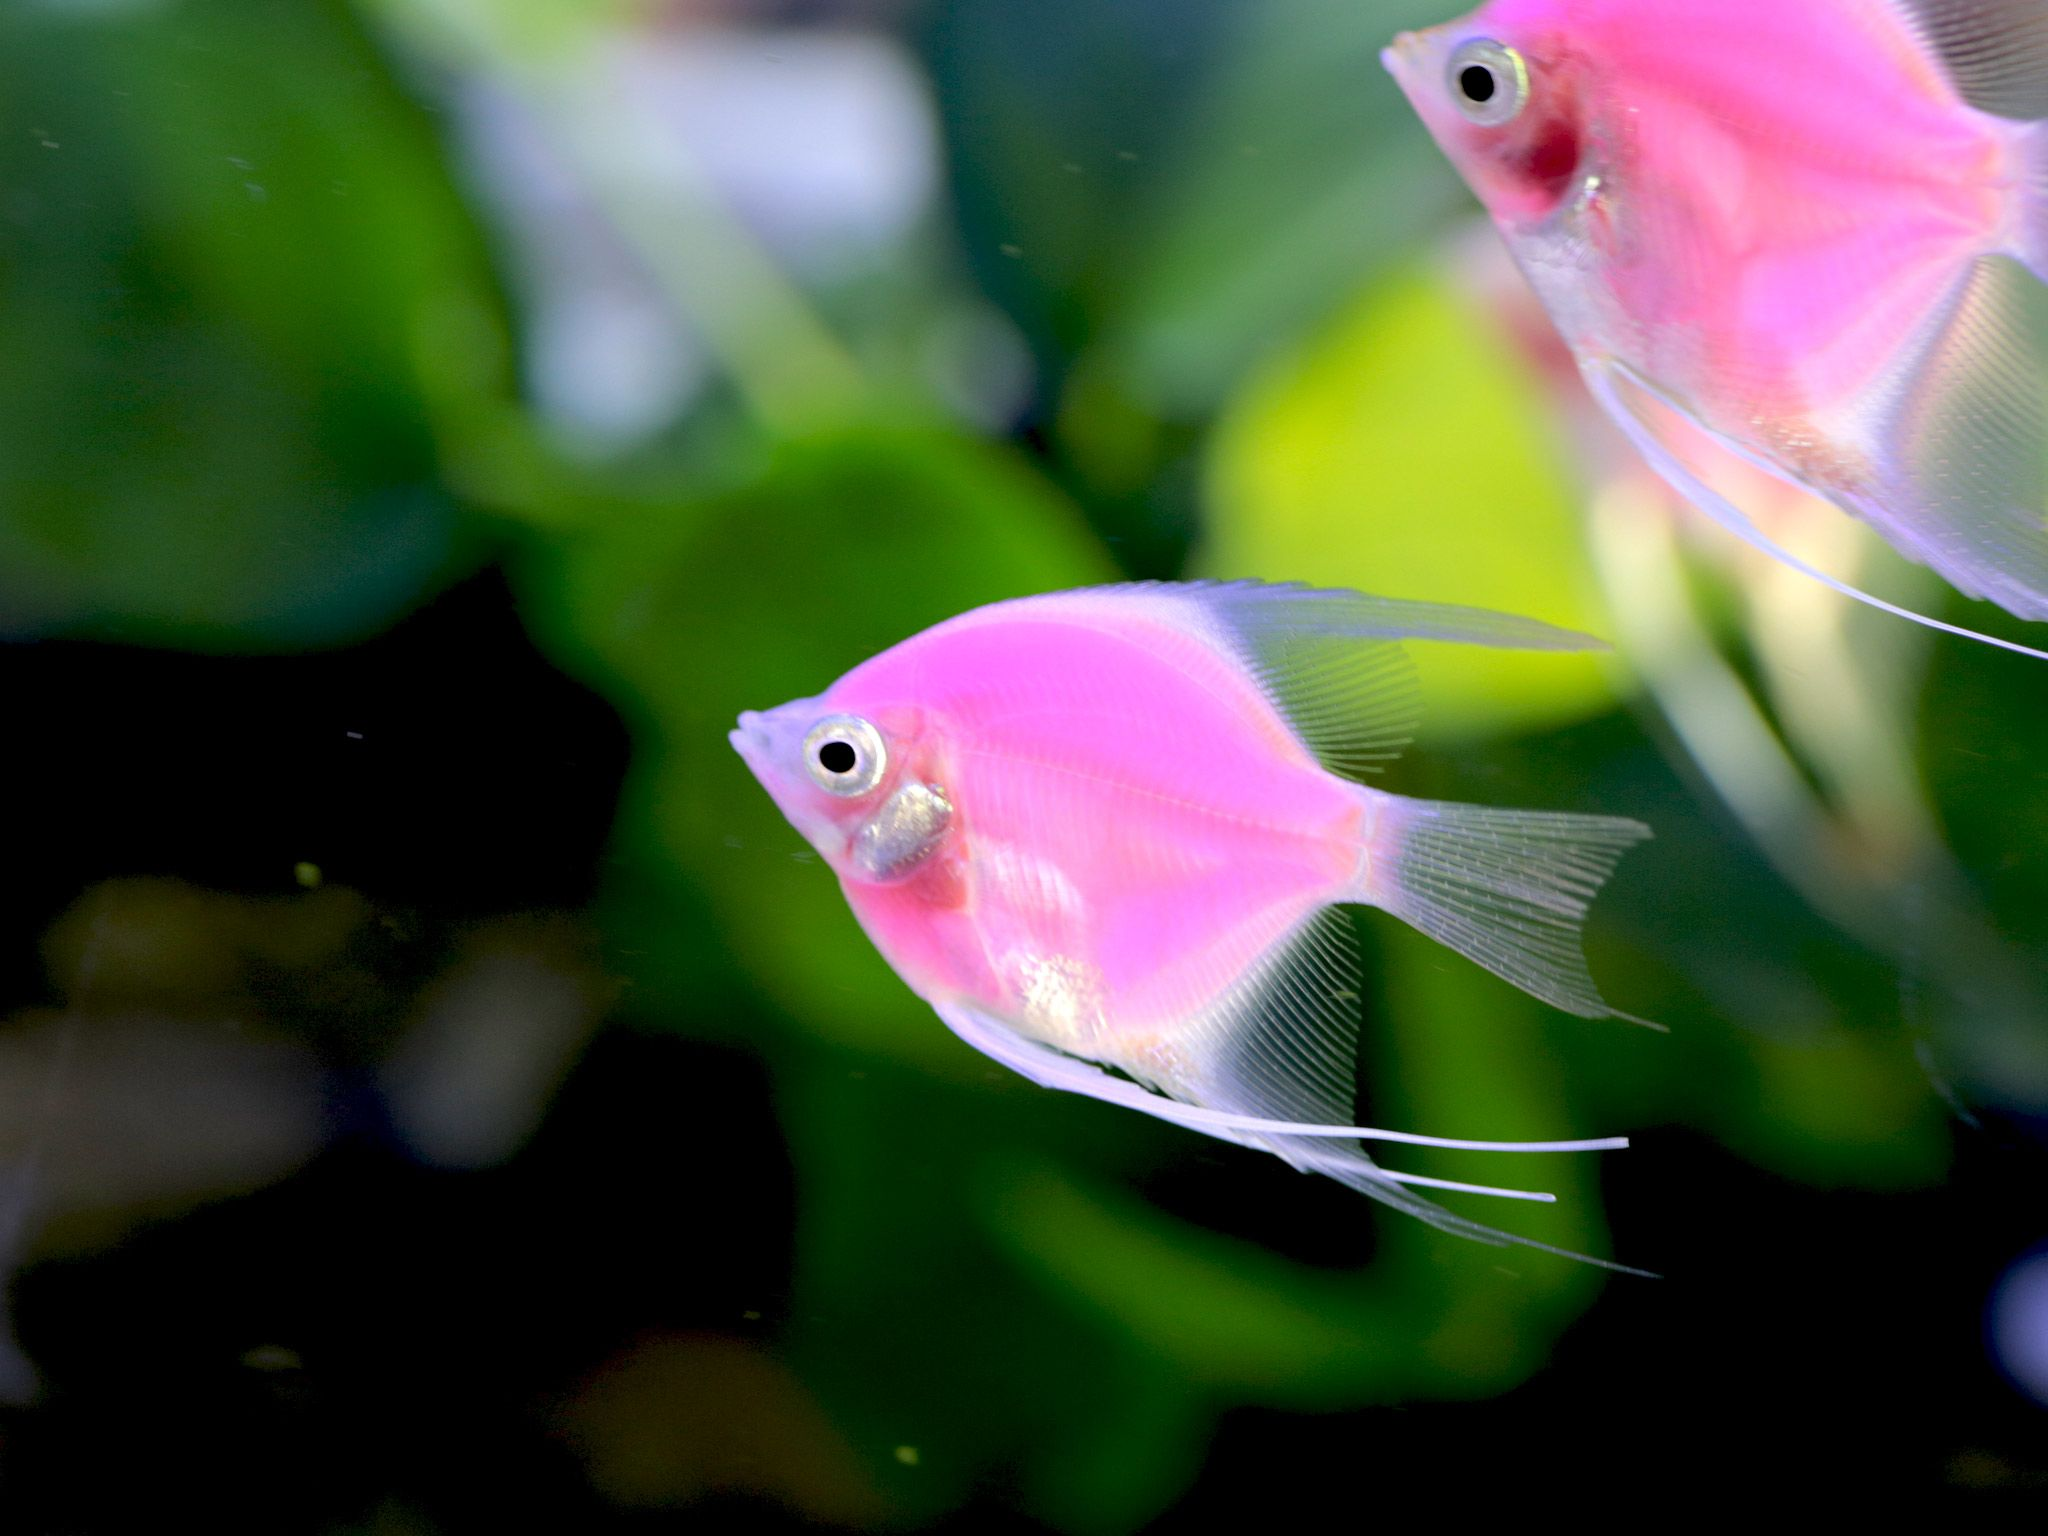 A Pink Fluorescent angelfish.